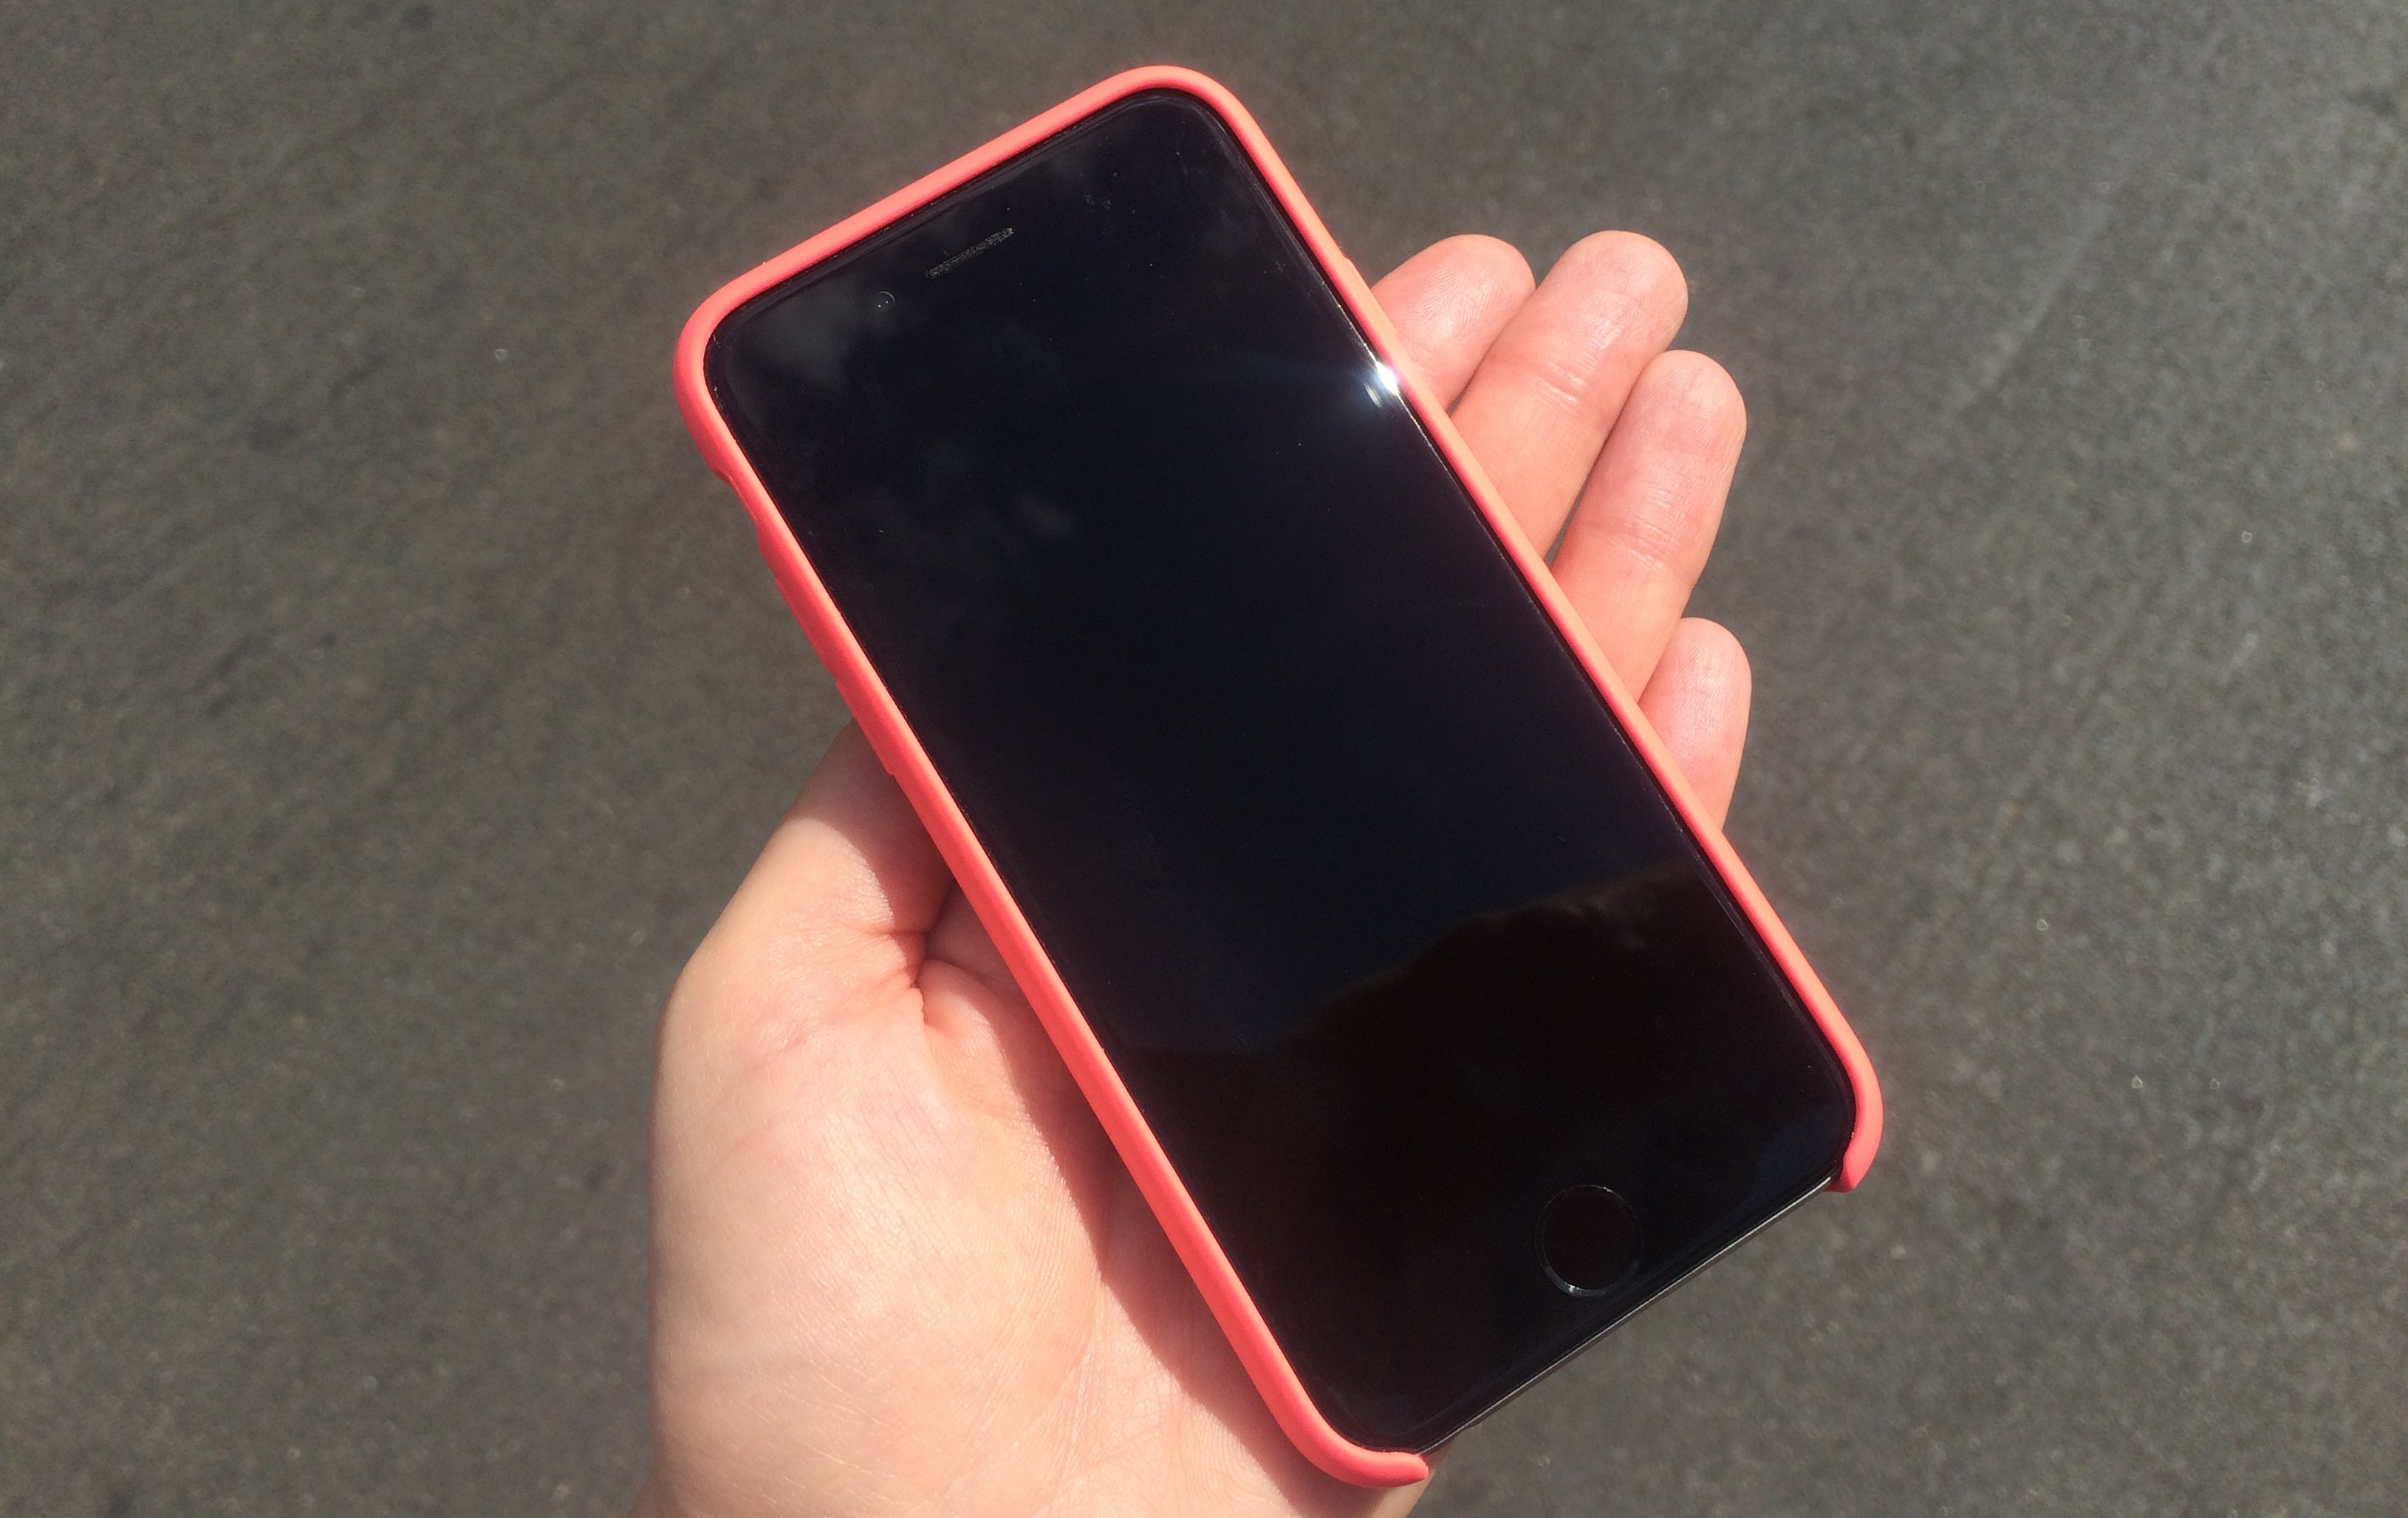 Rose Gold? That's Not Pink. RIP iPhone 5c, The Best Pink Phone Apple Ever Made